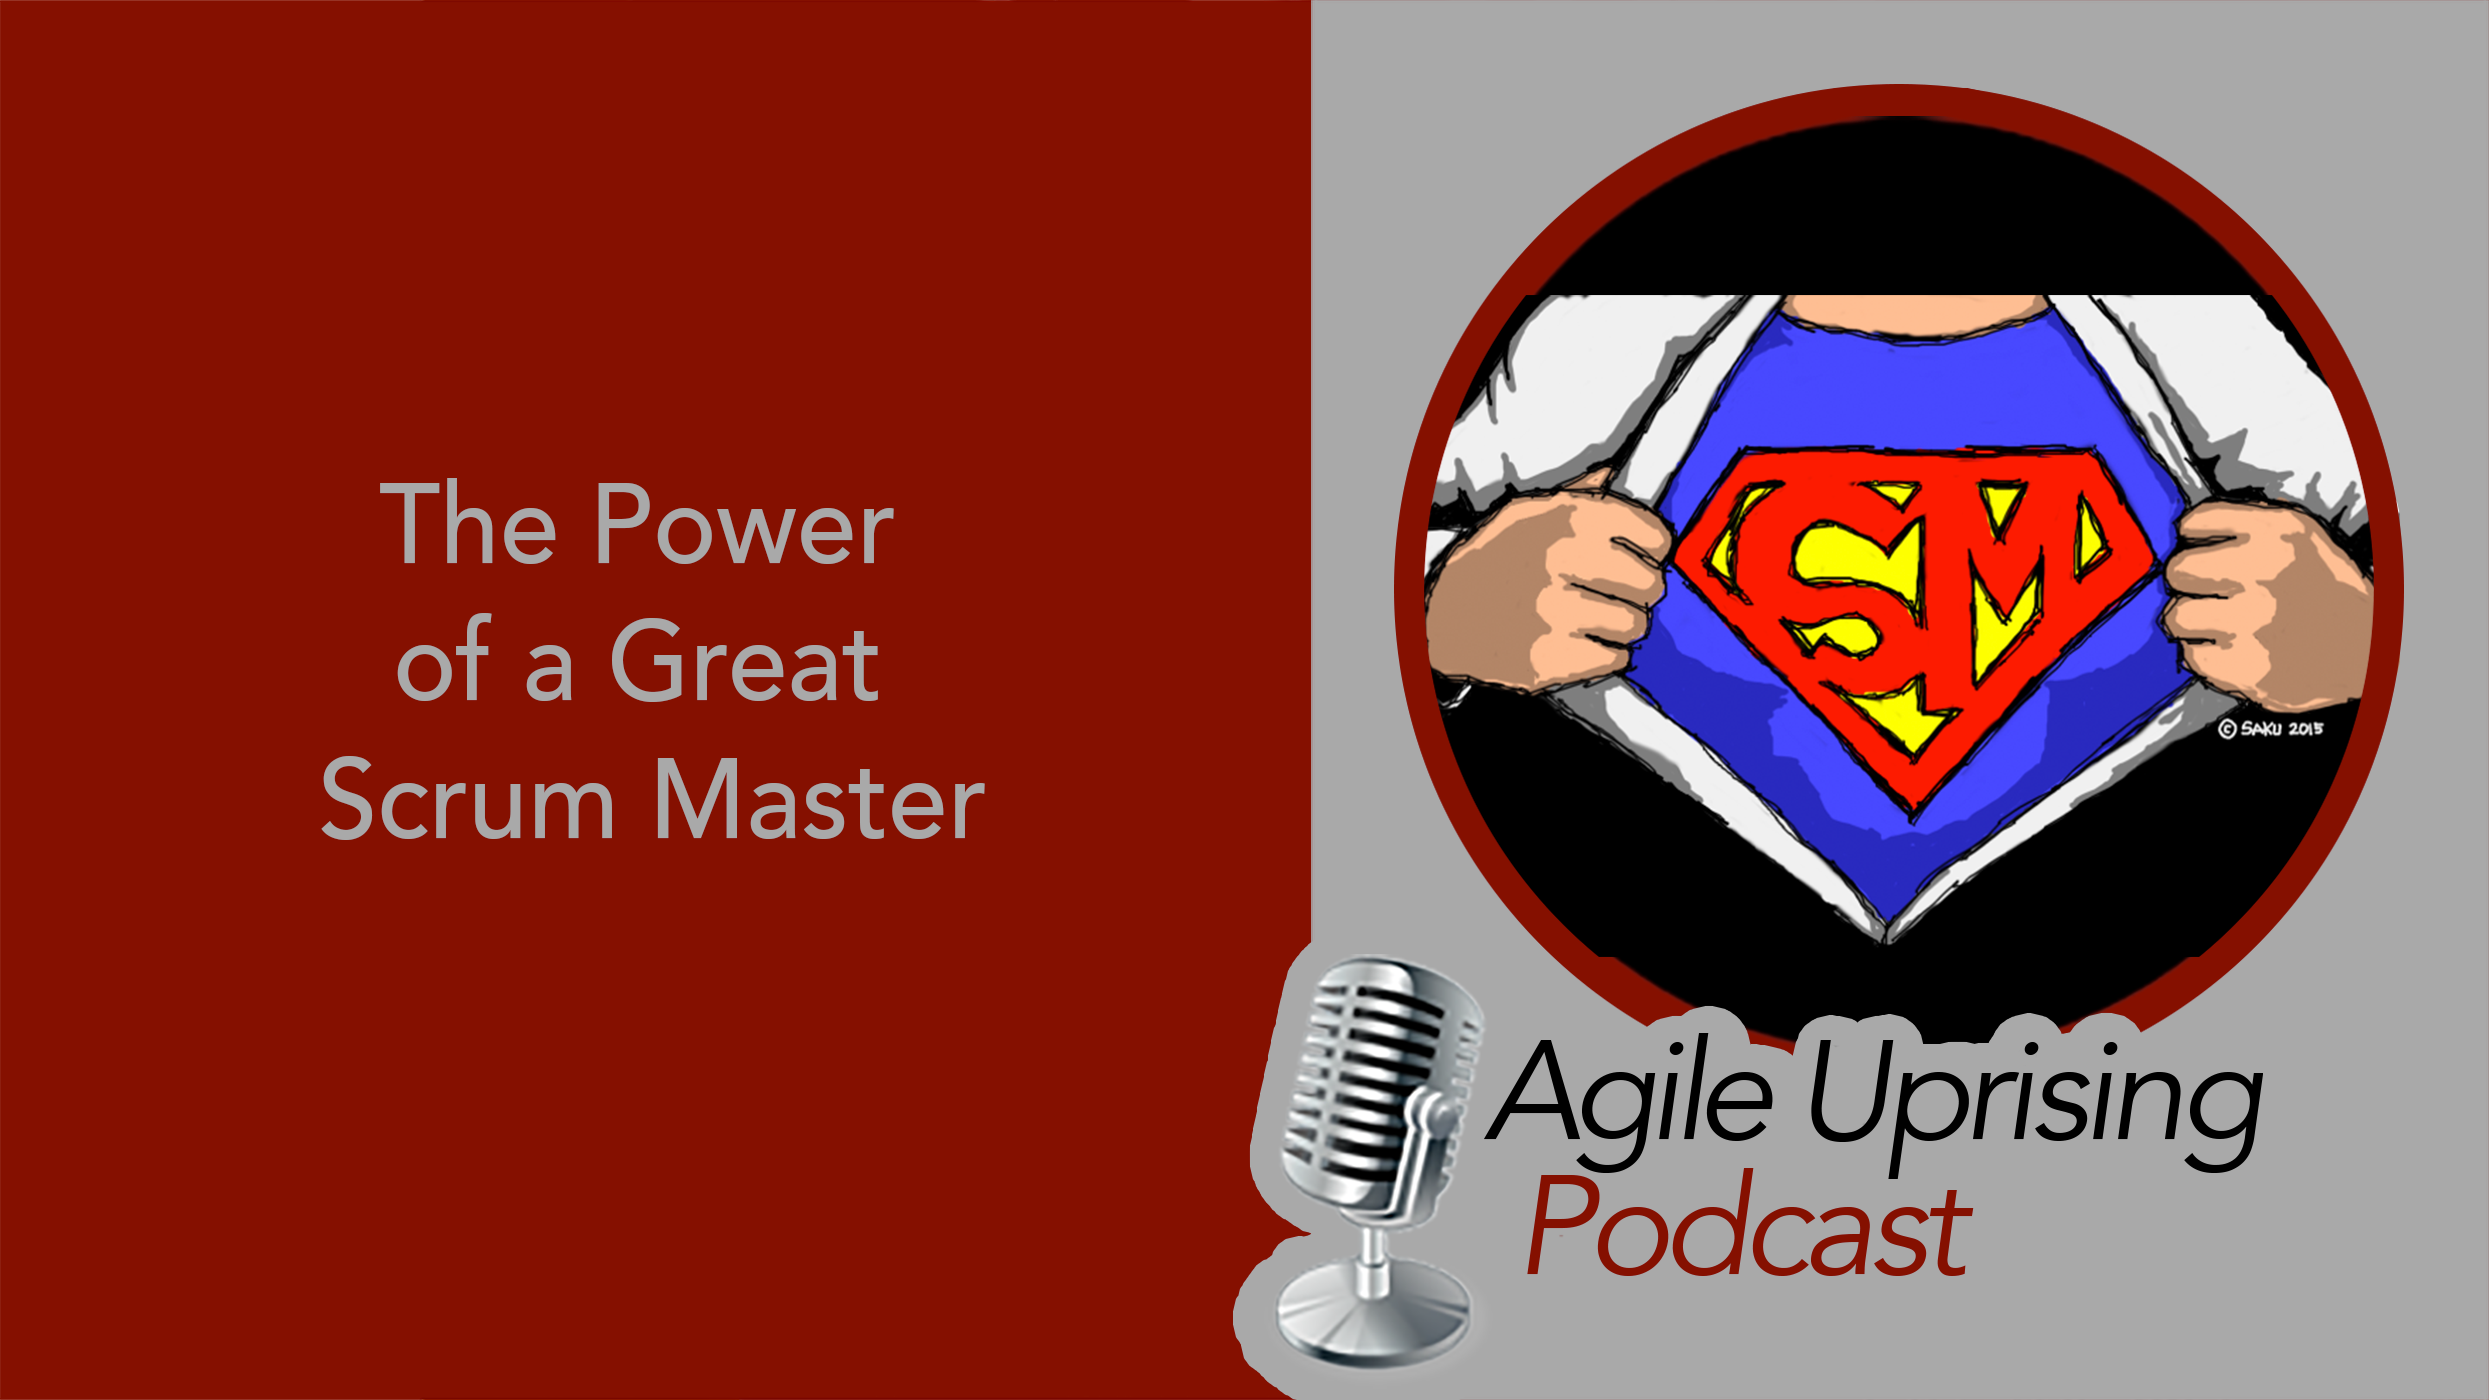 Agile Uprising Podcast: The Power of a Great Scrum Master